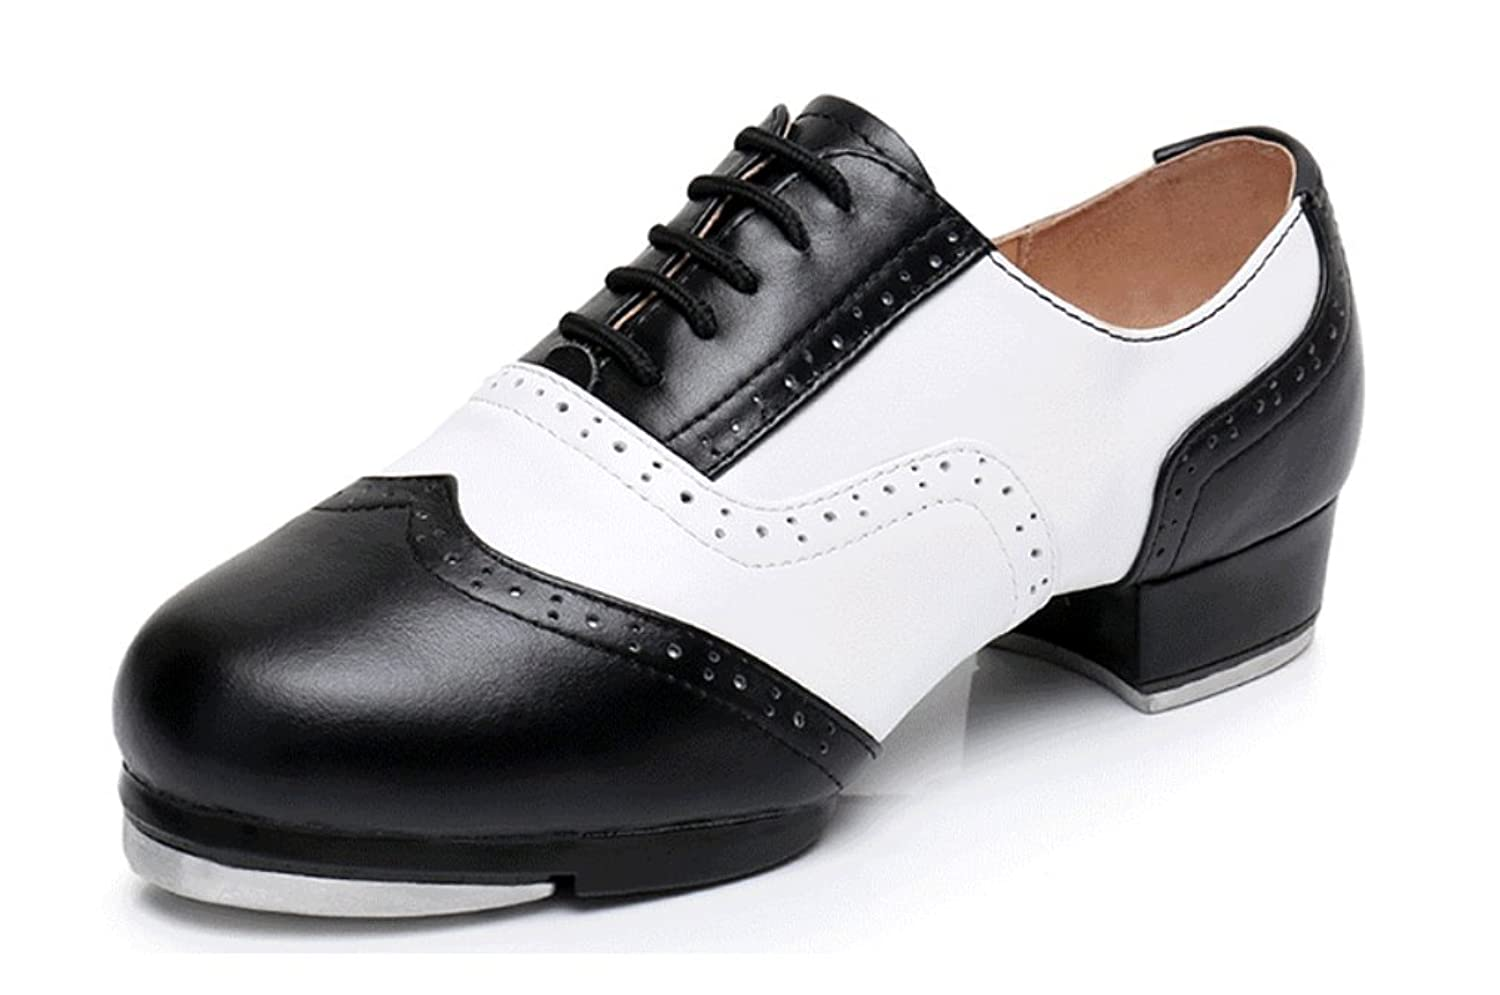 Gogodance Genuine Leather Adults Men Women International Black and White Tap Dance Shoes Size US 4.5-13 B07829J7JQ 13 US / Foot Length 11.63